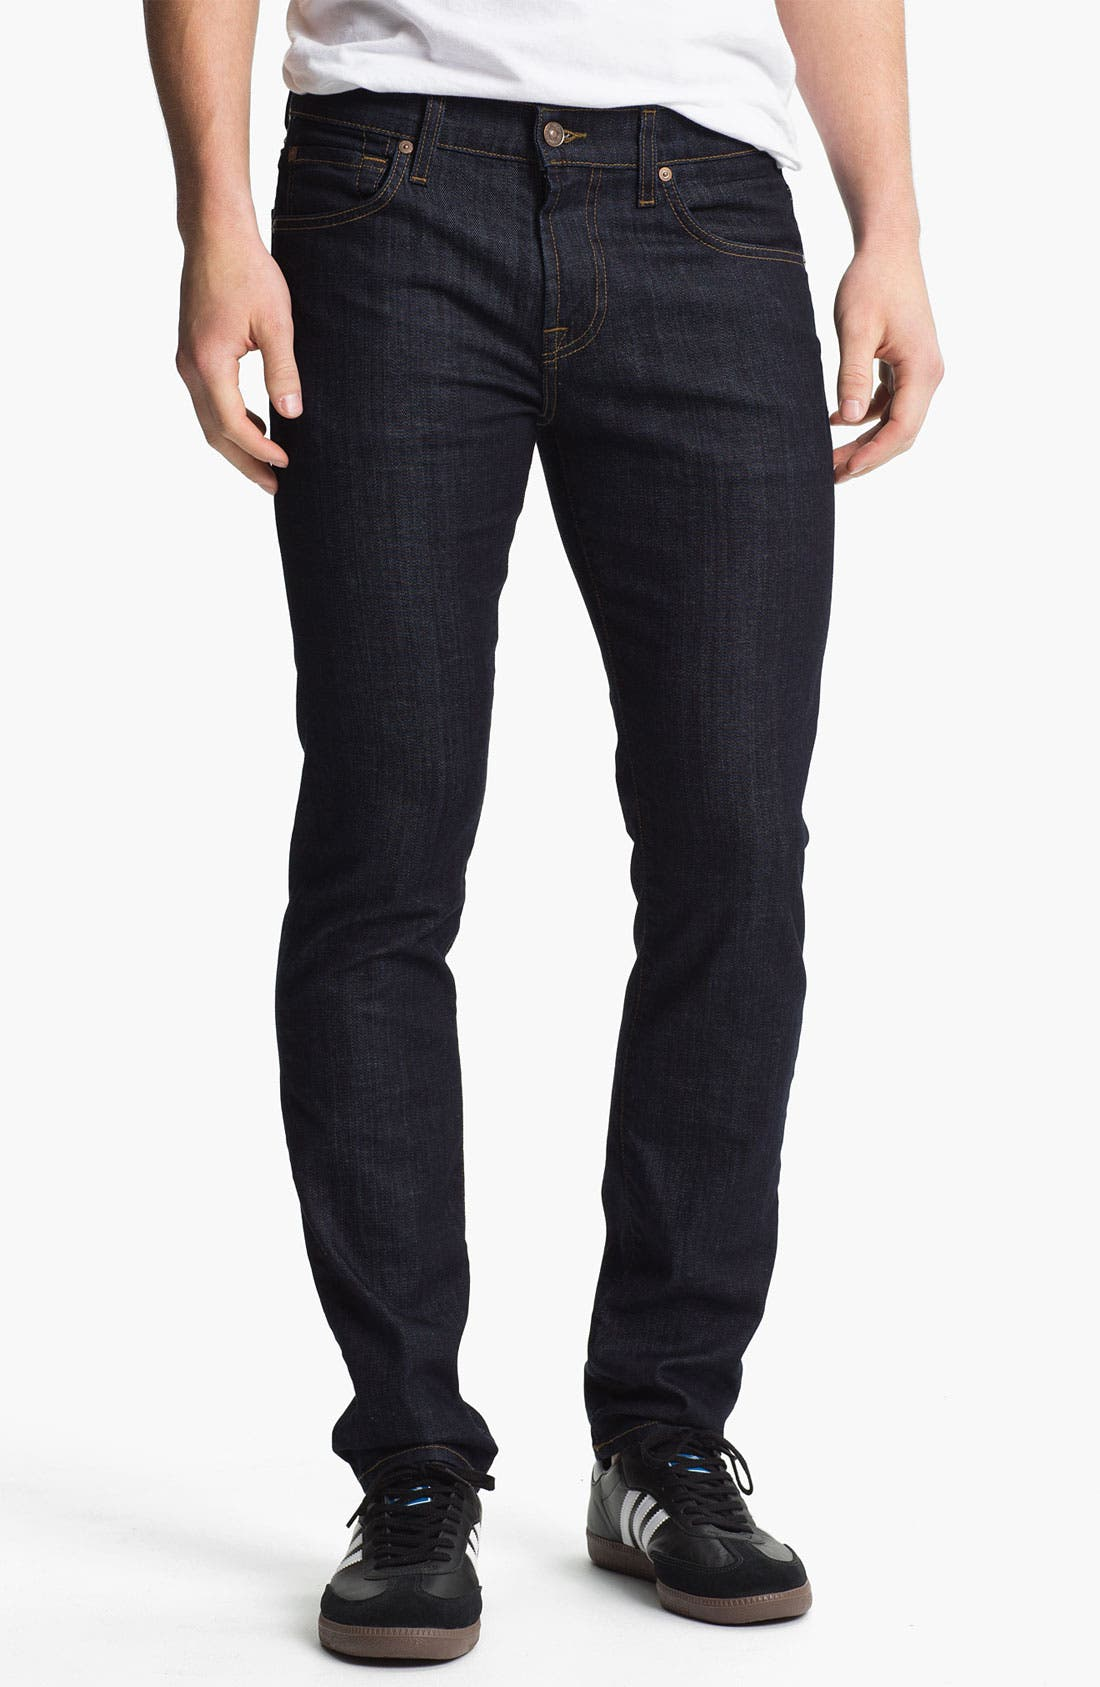 'Paxtyn' Skinny Fit Jeans,                             Main thumbnail 1, color,                             400